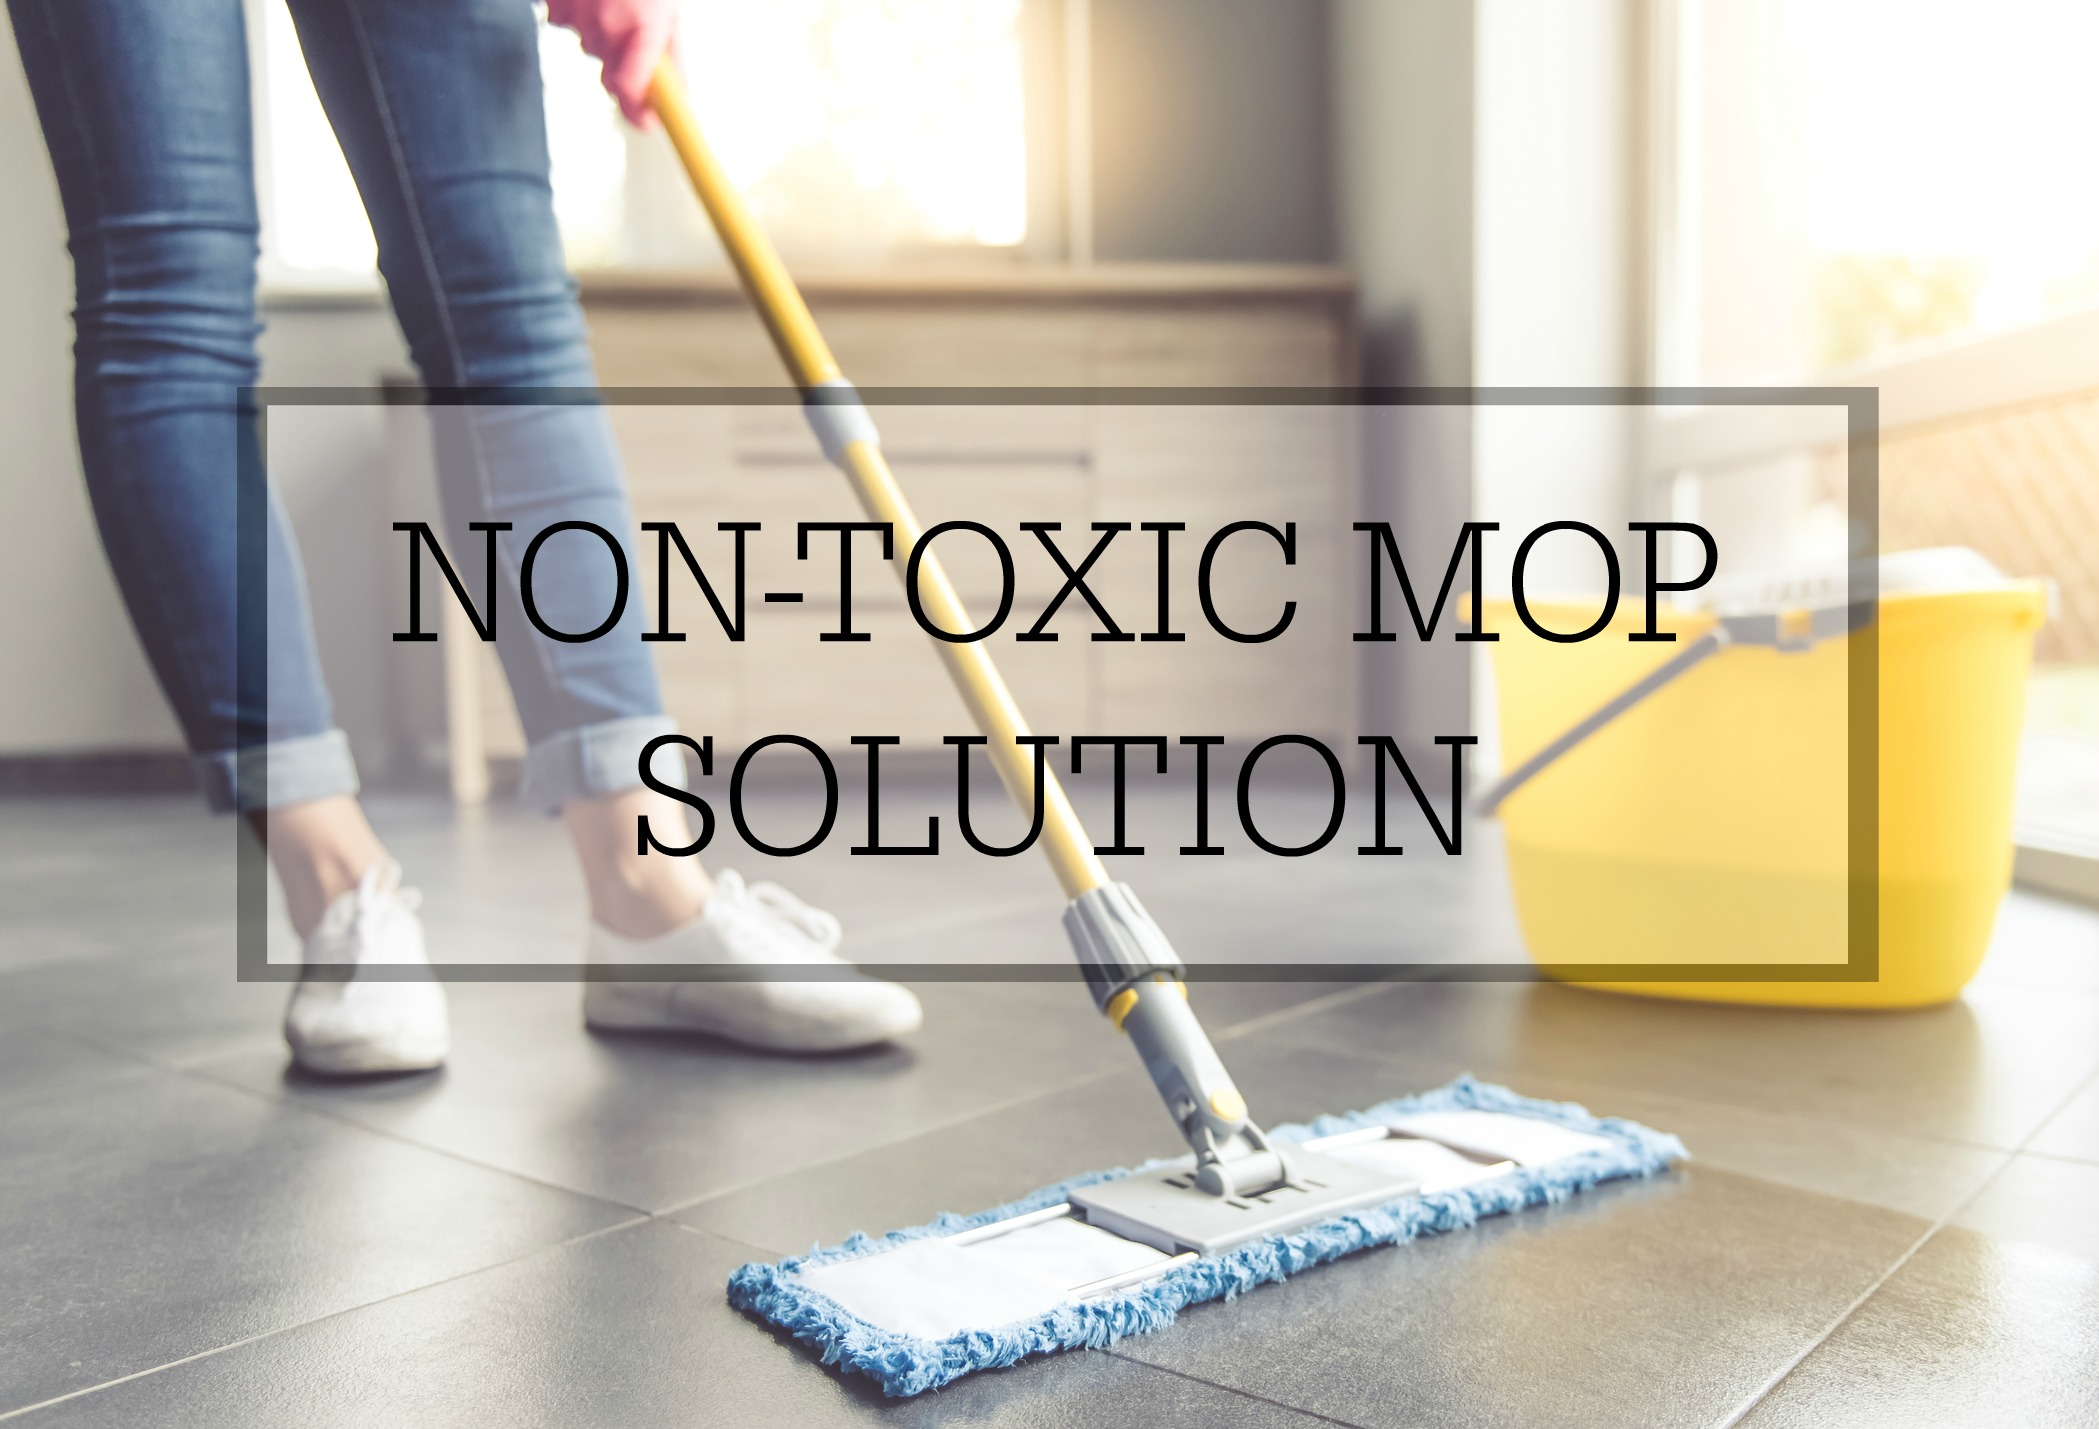 Homemade non-toxic mopping solution